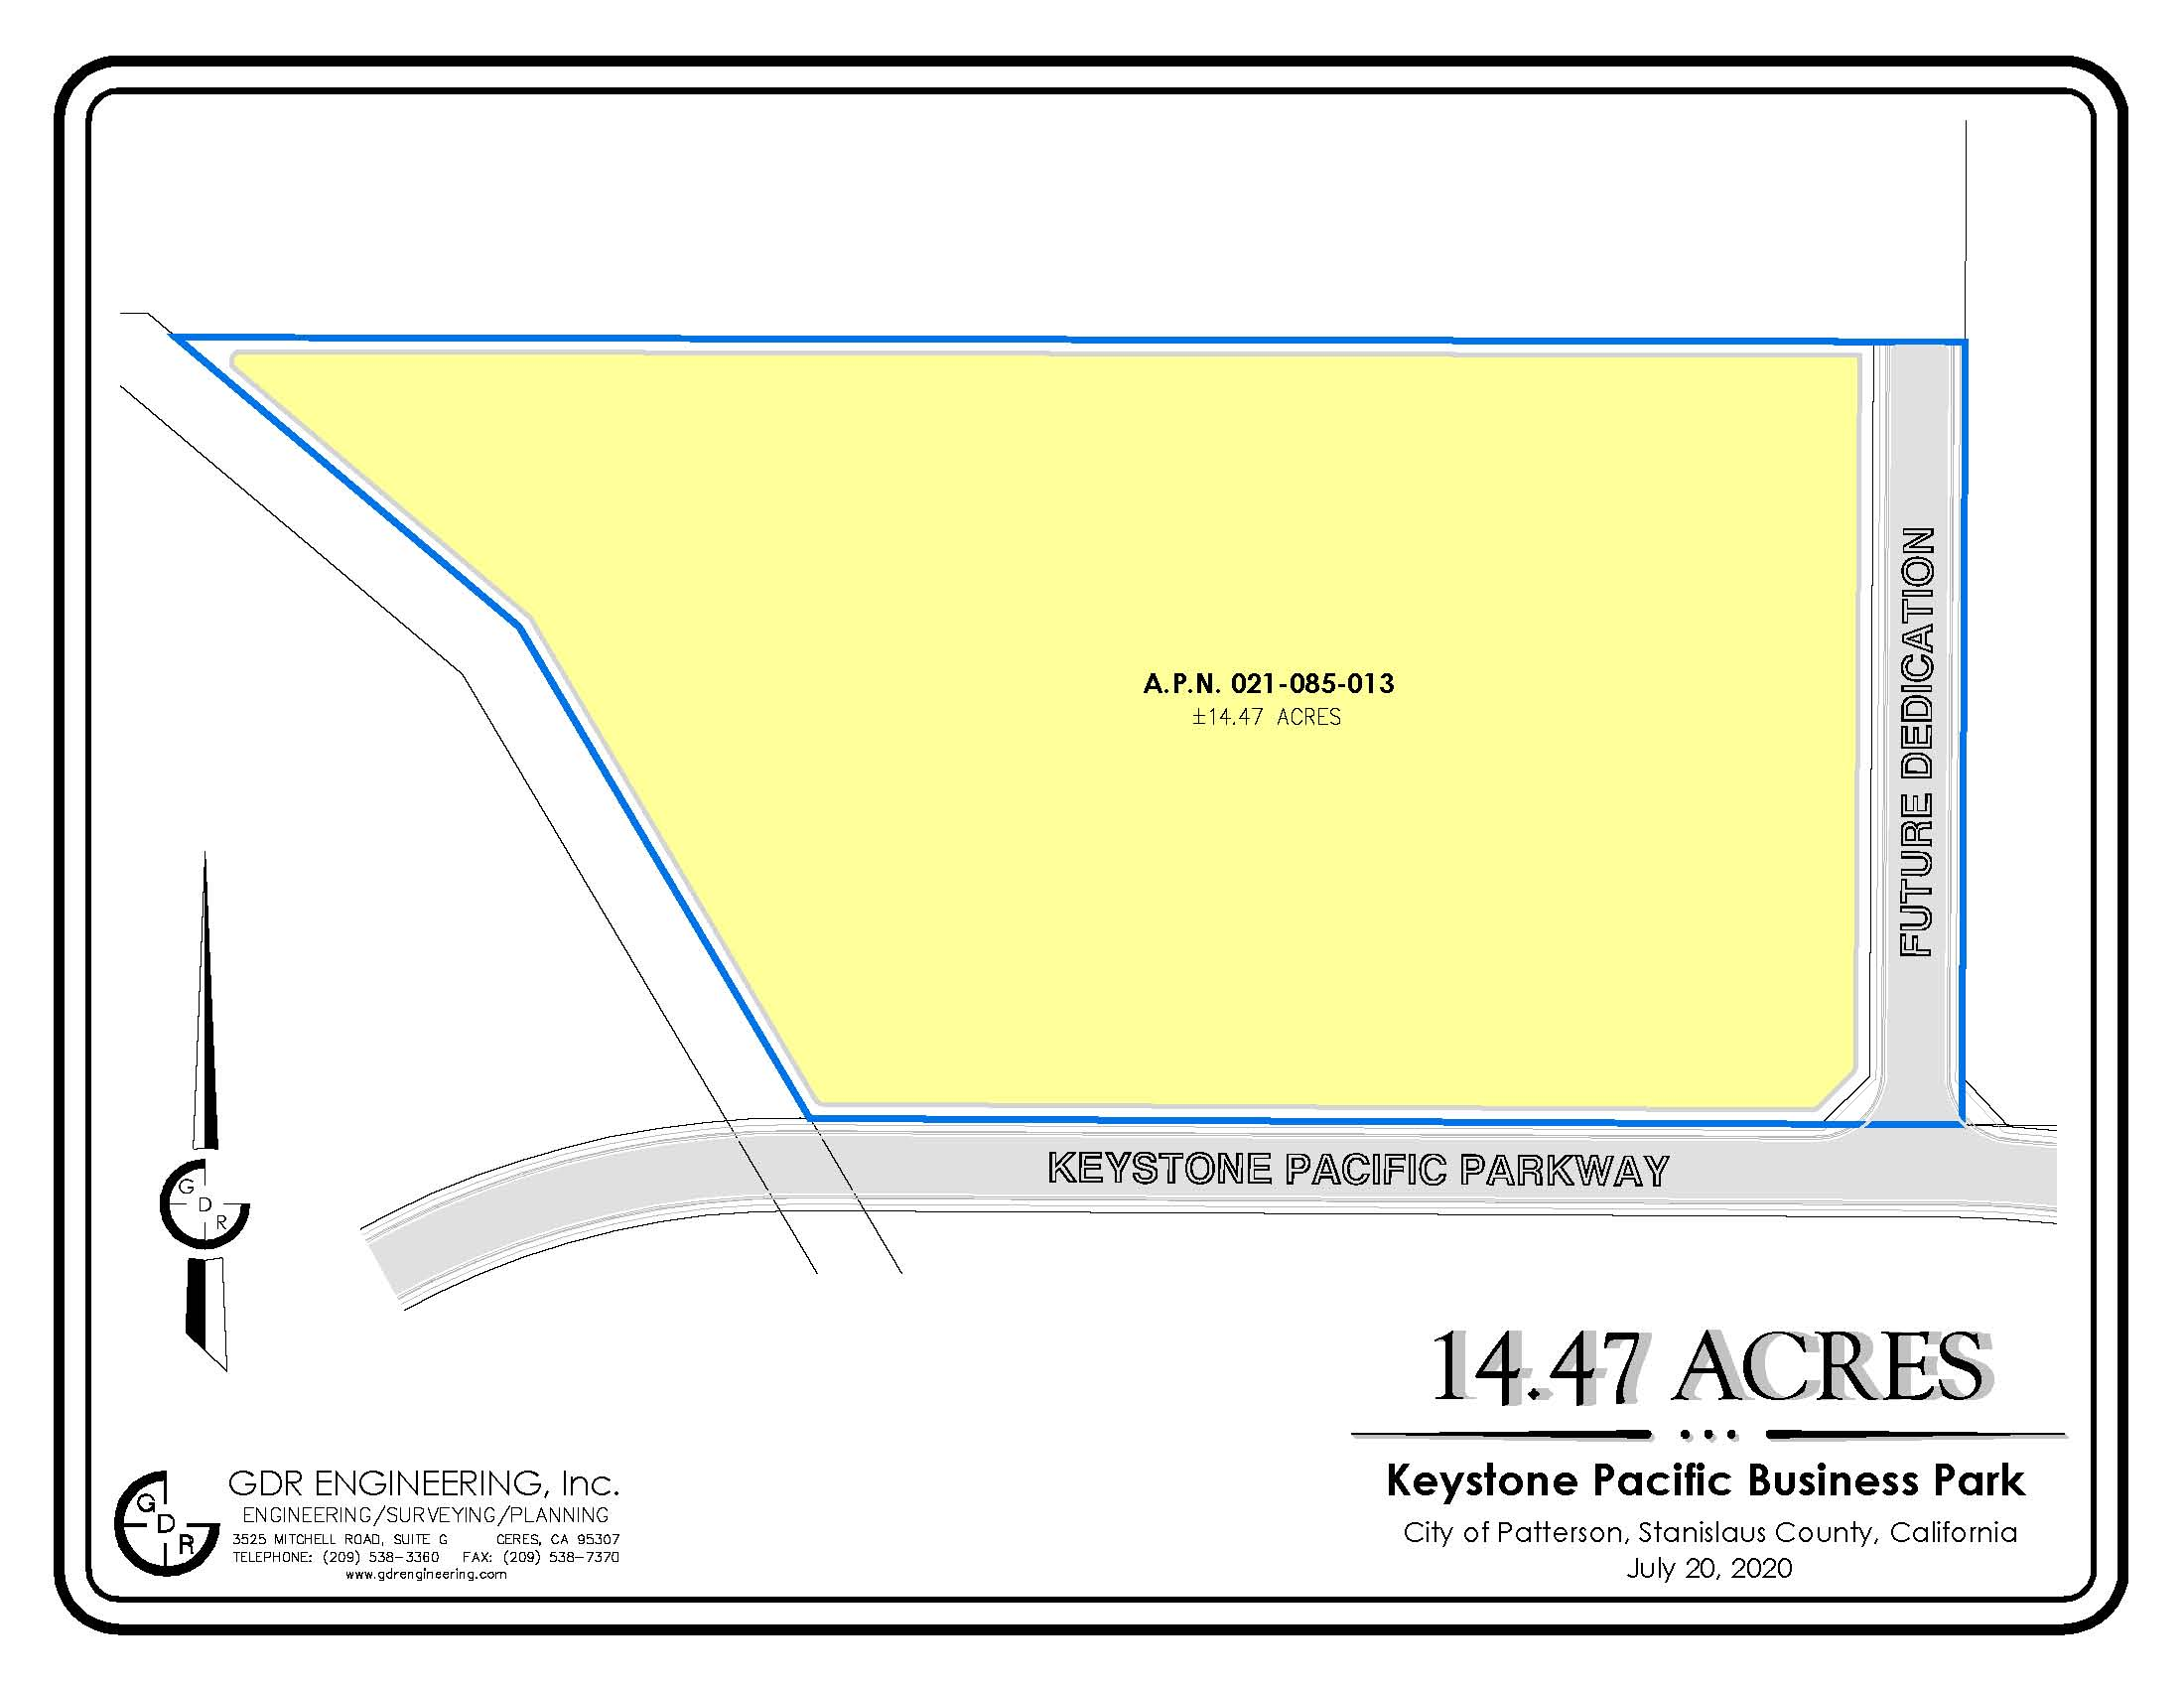 KEYSTONE PACIFIC BUSINESS PARK 14.47 Acre Site Parcel 021-085-013